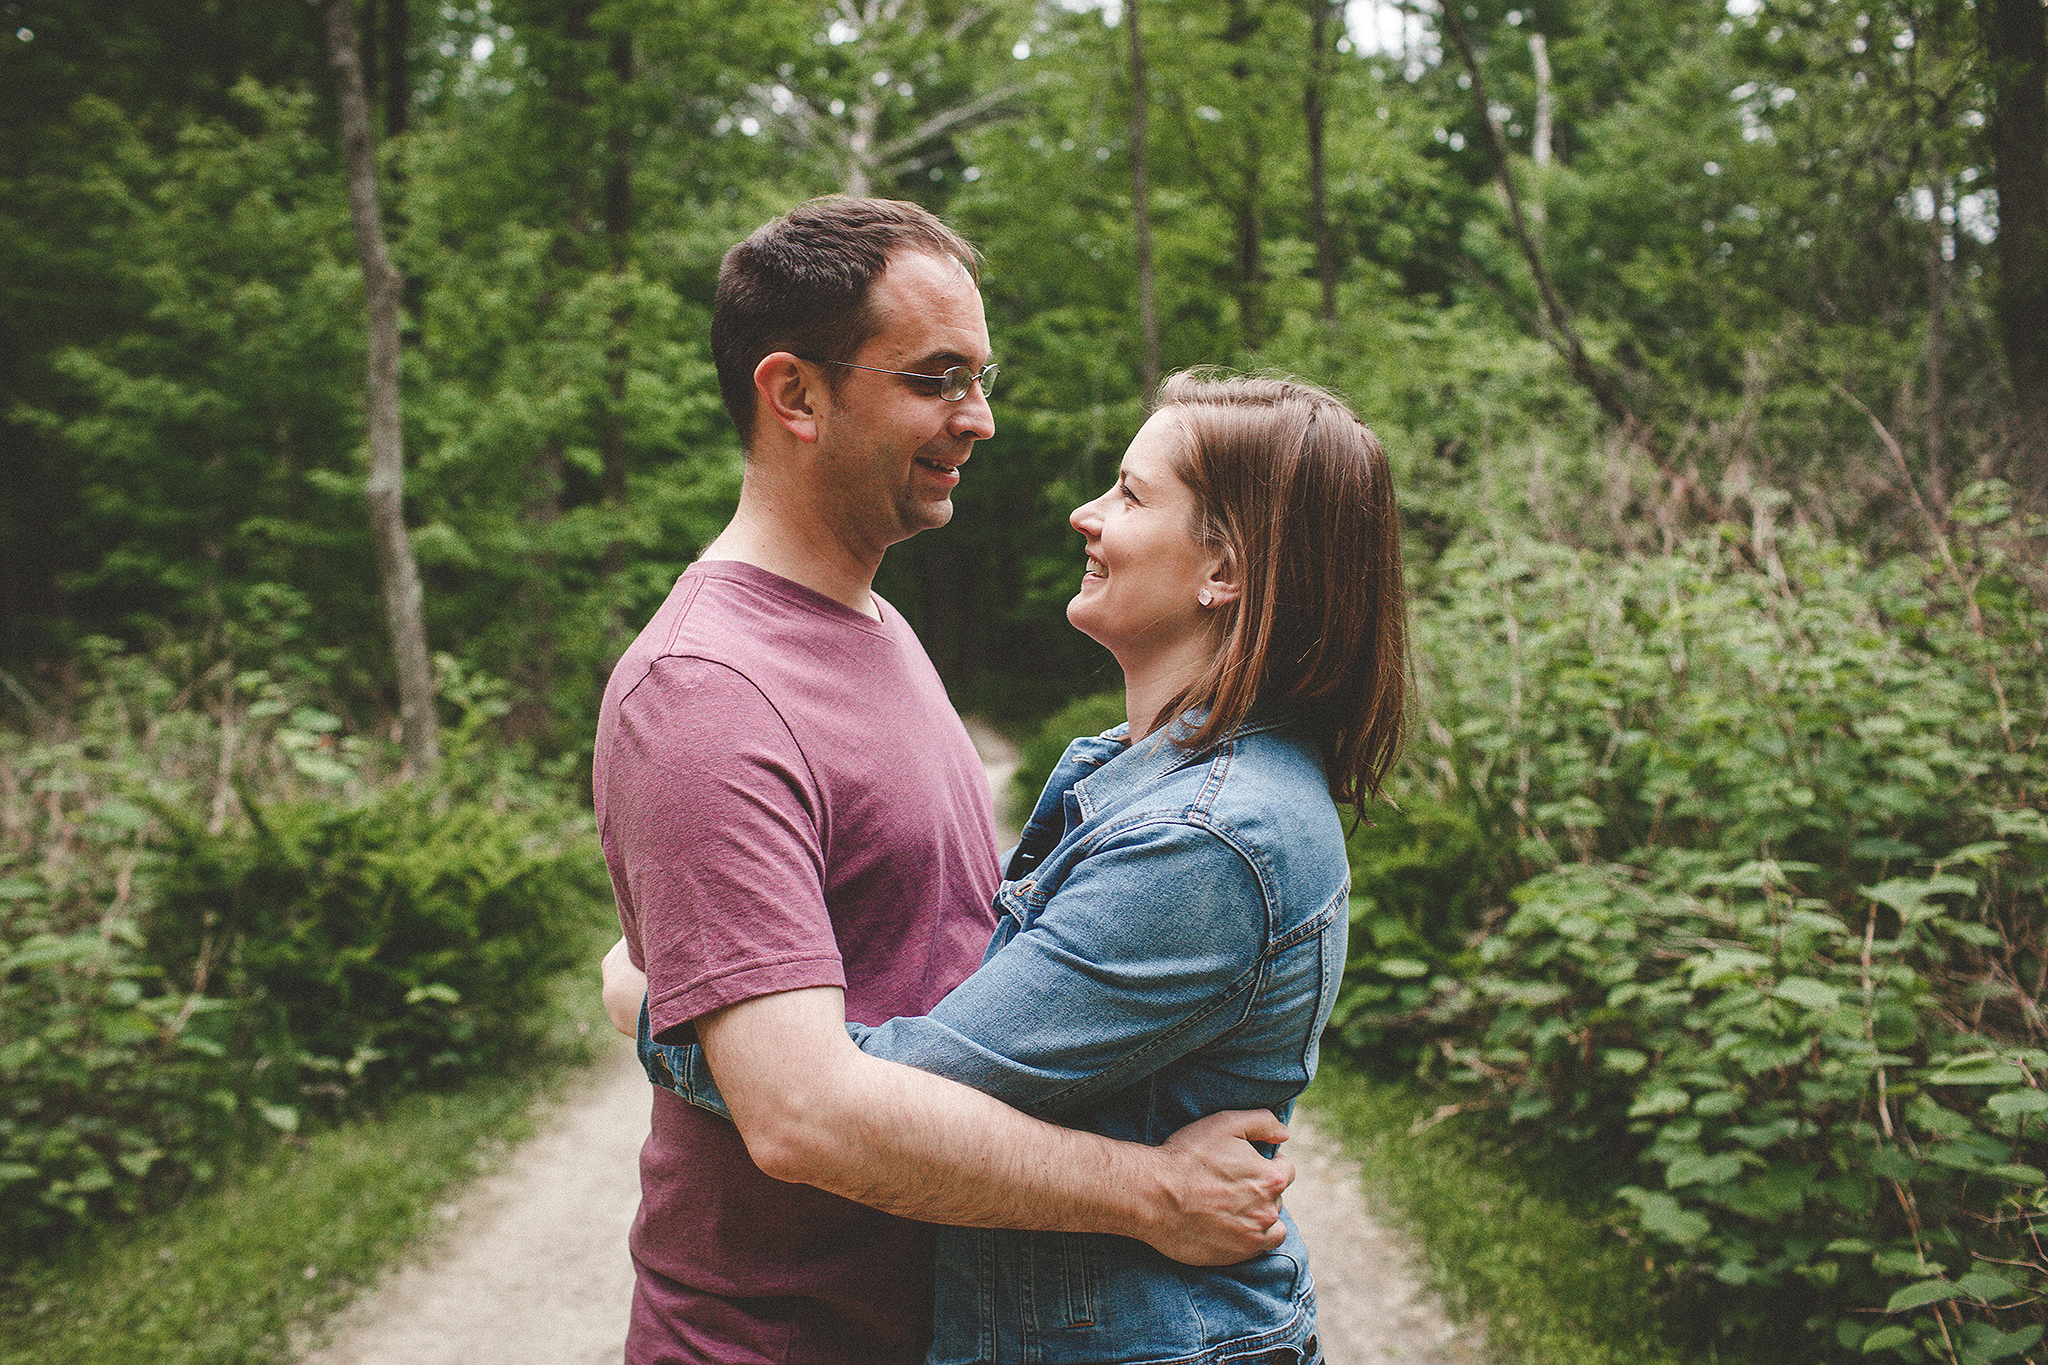 Forest Preserve Engagement pictures | Sheboygan, WI wedding & engagement photographer | Chrissy Deming Photography